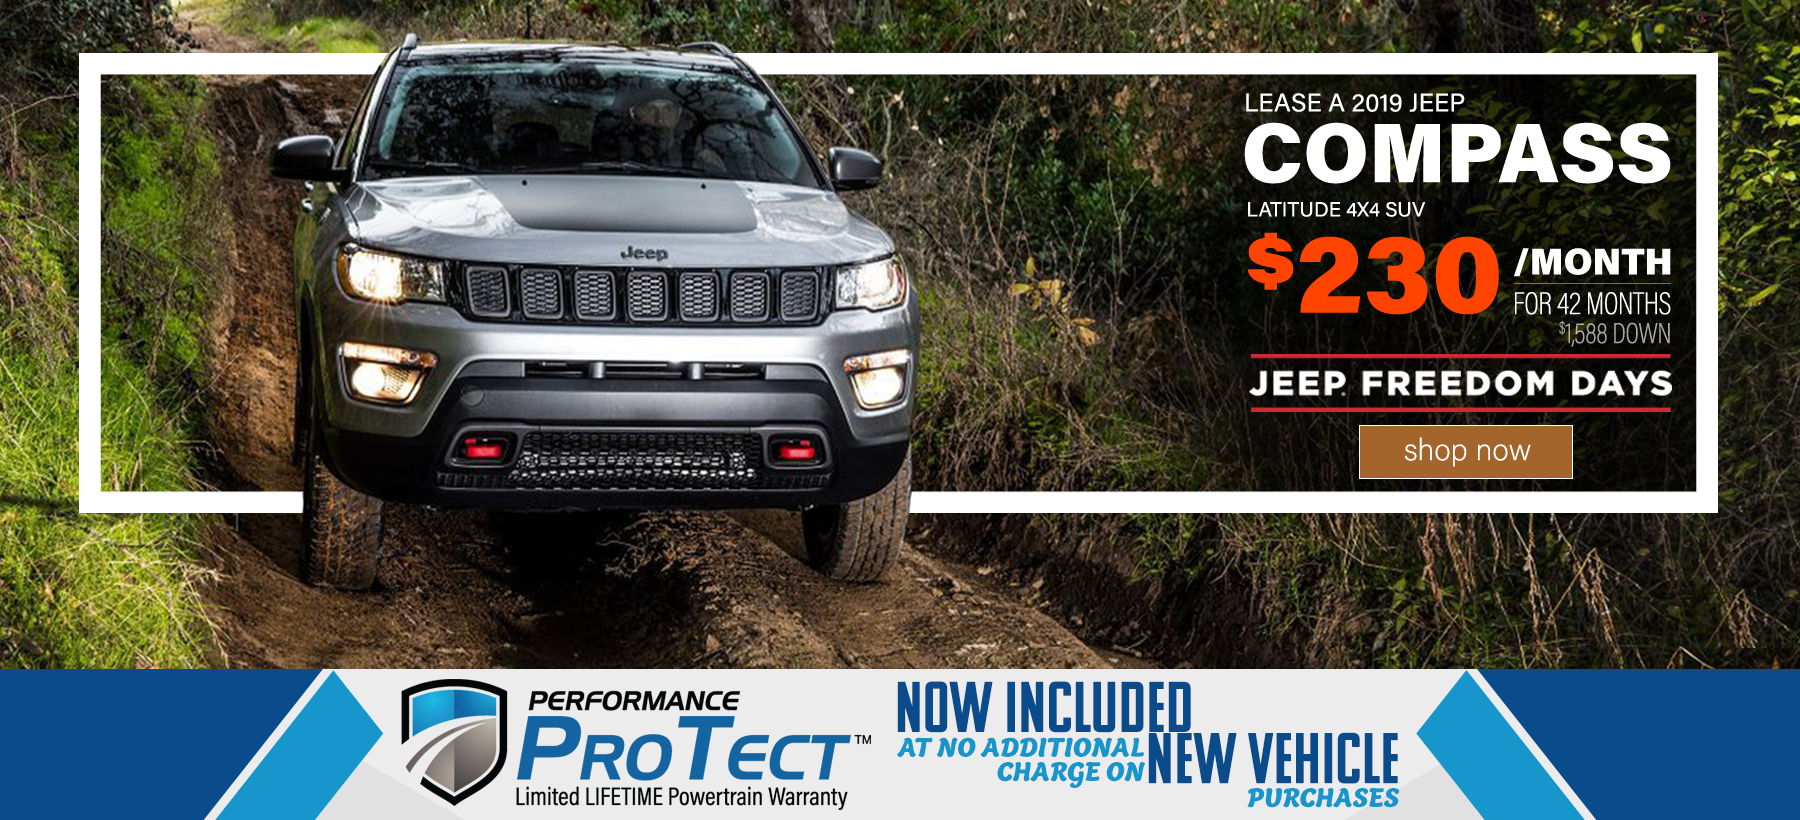 new-2019-jeep-compass-lease-special-dayton-ohio